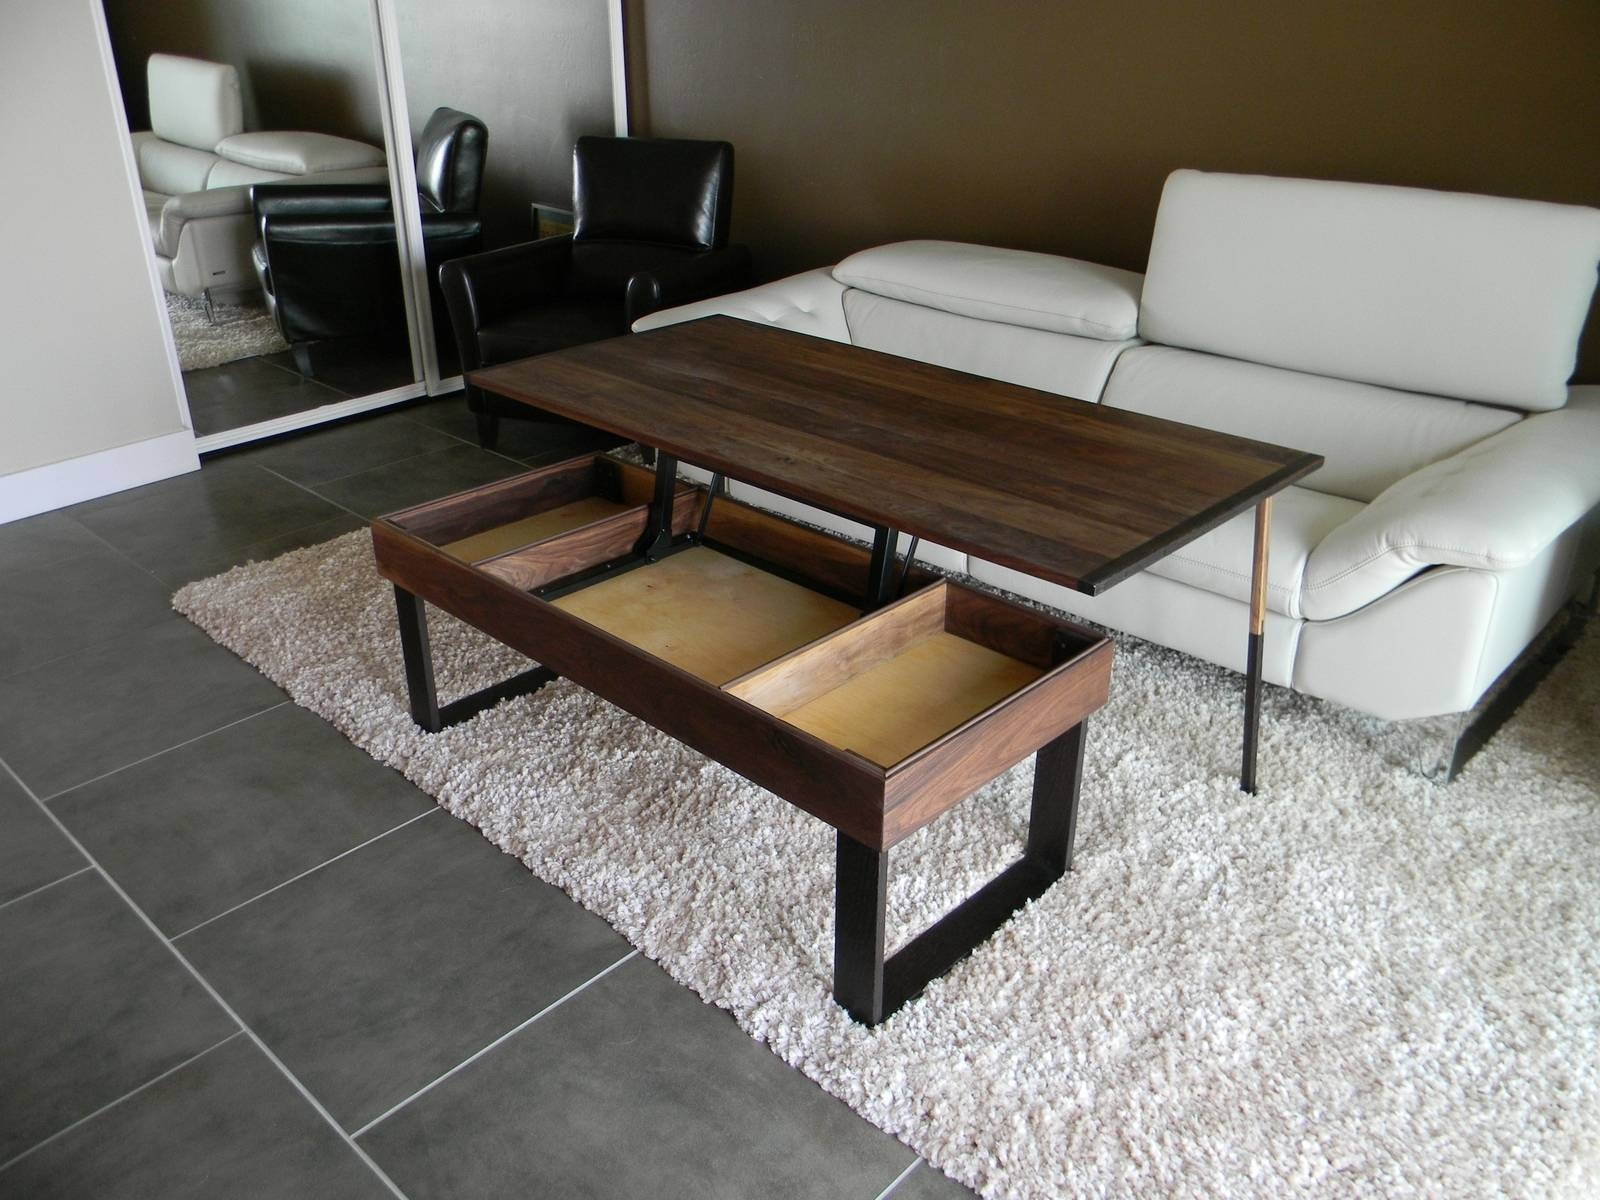 Black Lift Top Coffee Table With Drawers | Coffee Tables Decoration regarding Coffee Tables With Lift Top Storage (Image 4 of 30)